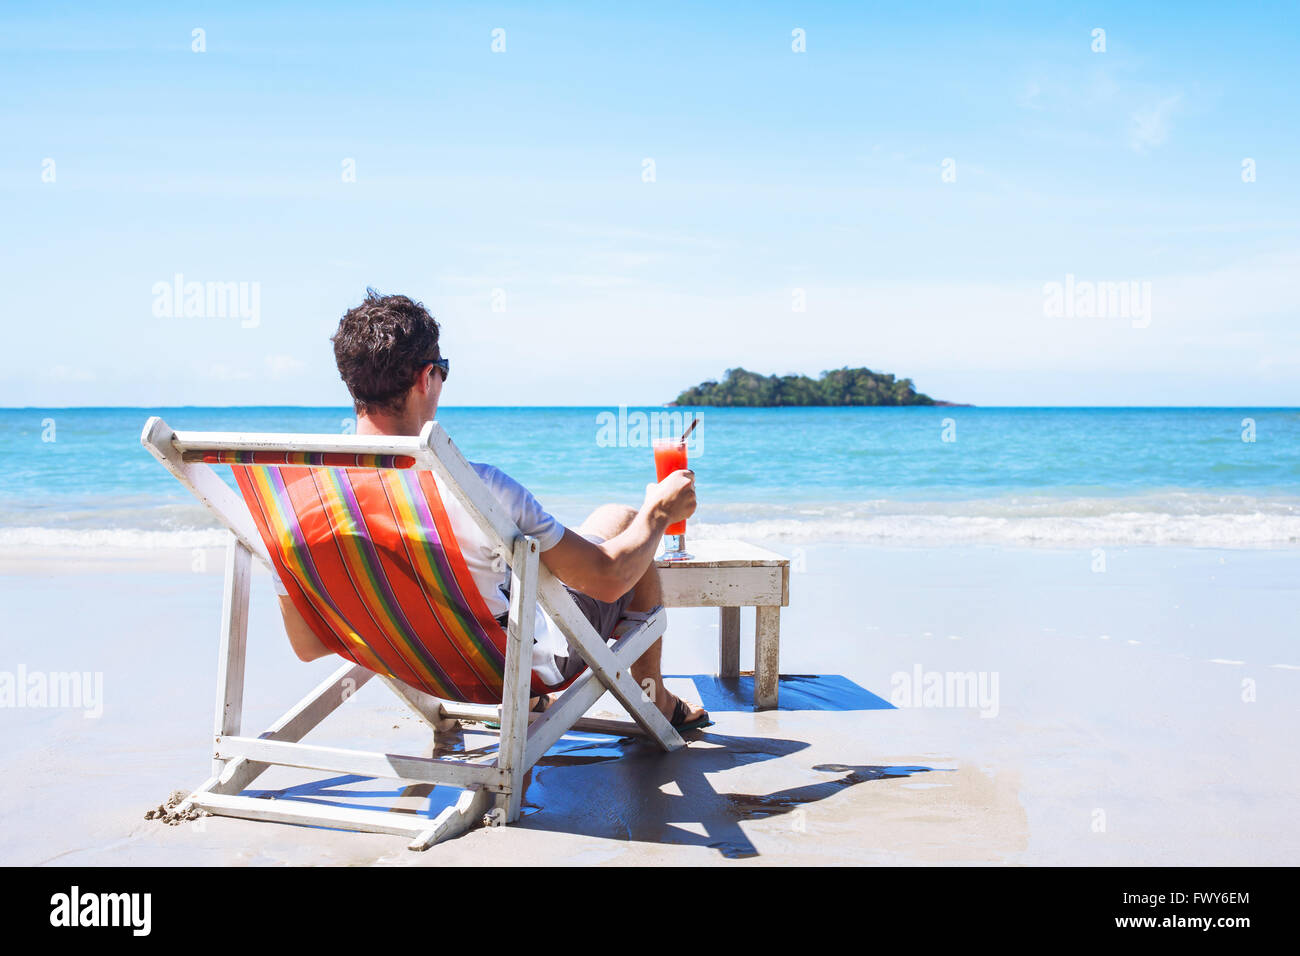 man relaxing on private beach on paradise island, luxurious holidays, tourist with cocktail sitting near the sea - Stock Image